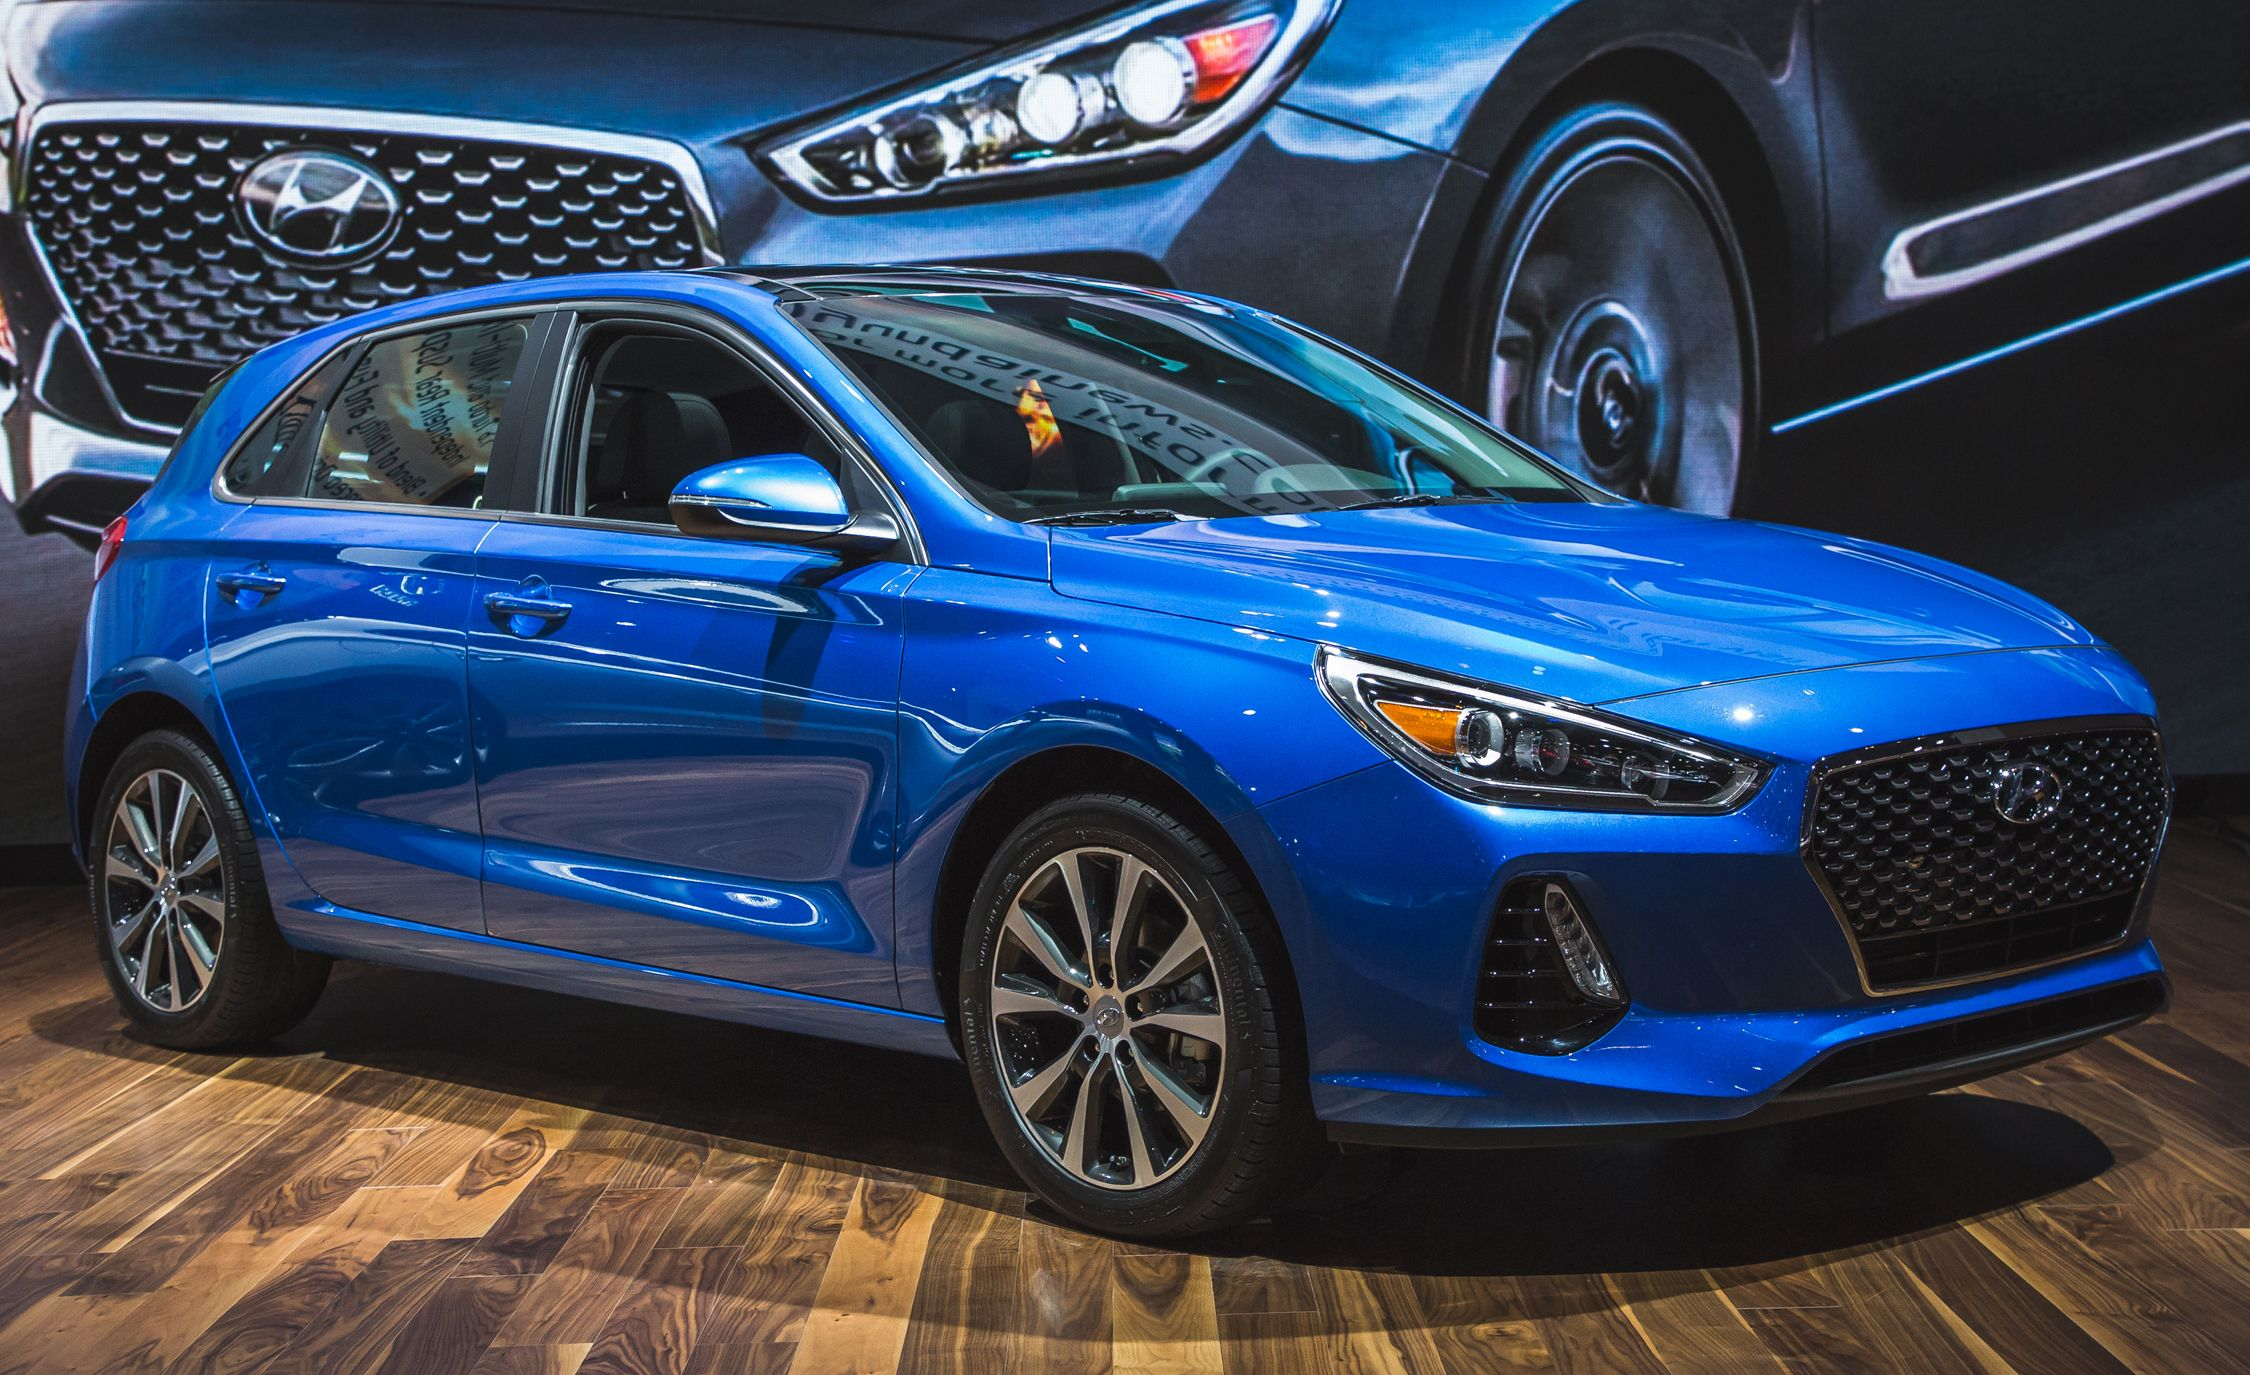 2018 Hyundai Elantra GT: A Euro Hatch with an Available Turbo/Manual Combo